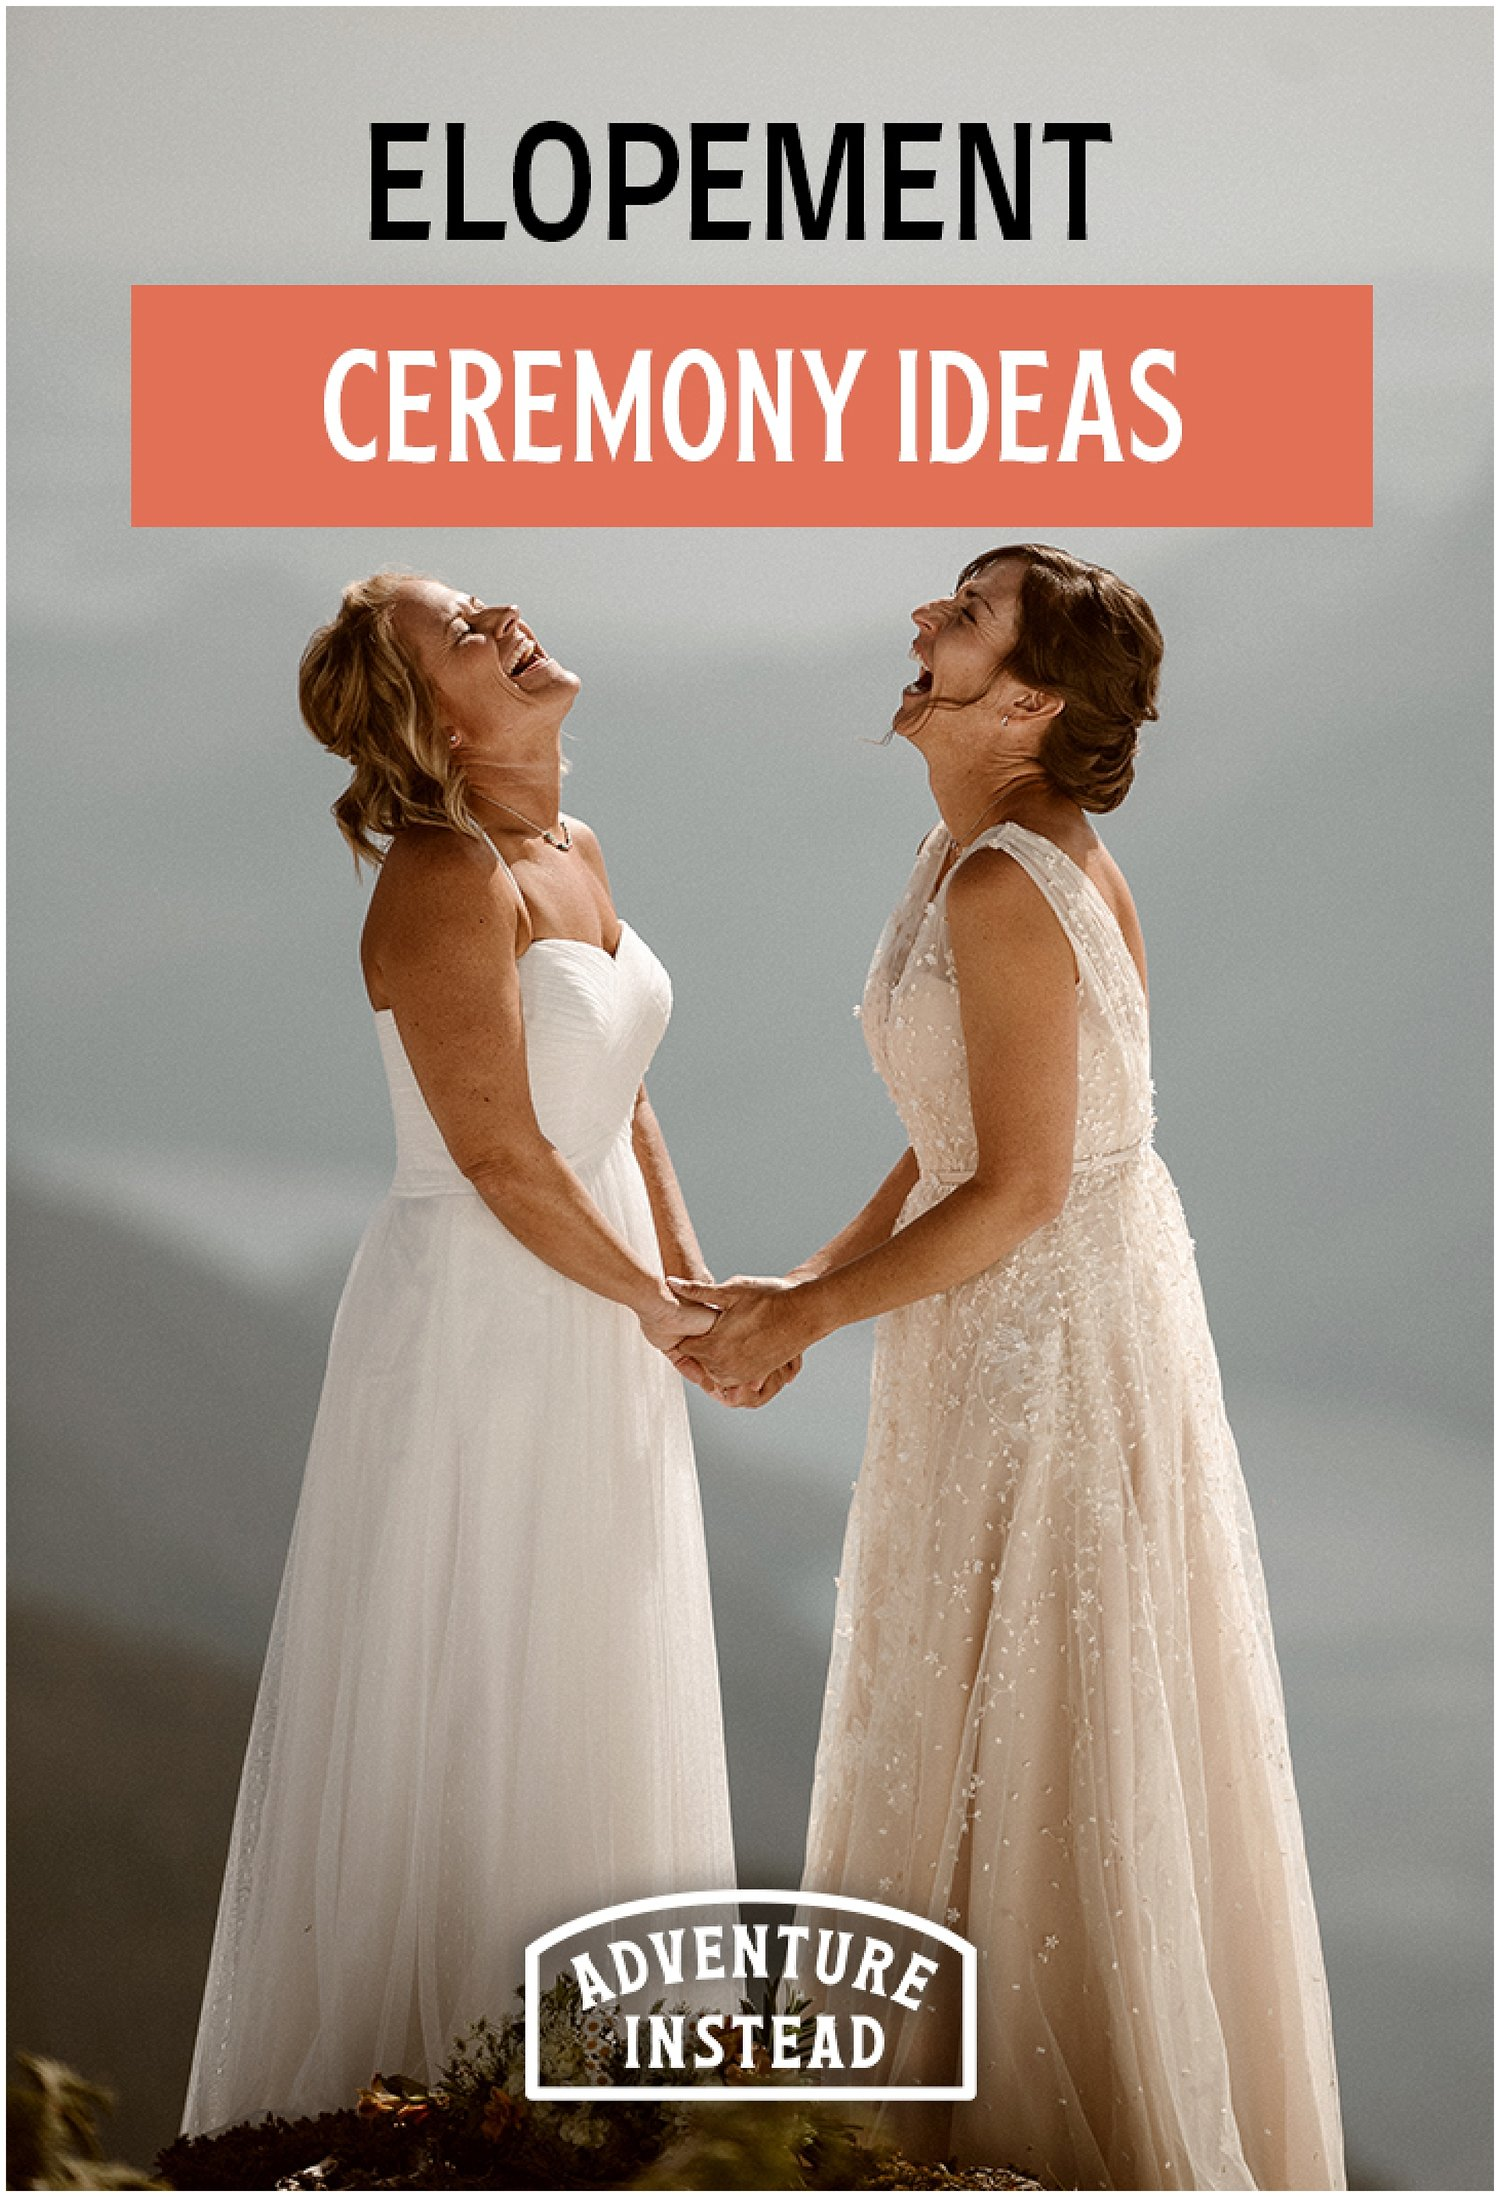 Elopement Ceremony Ideas—What to do During Your Elopement Ceremony